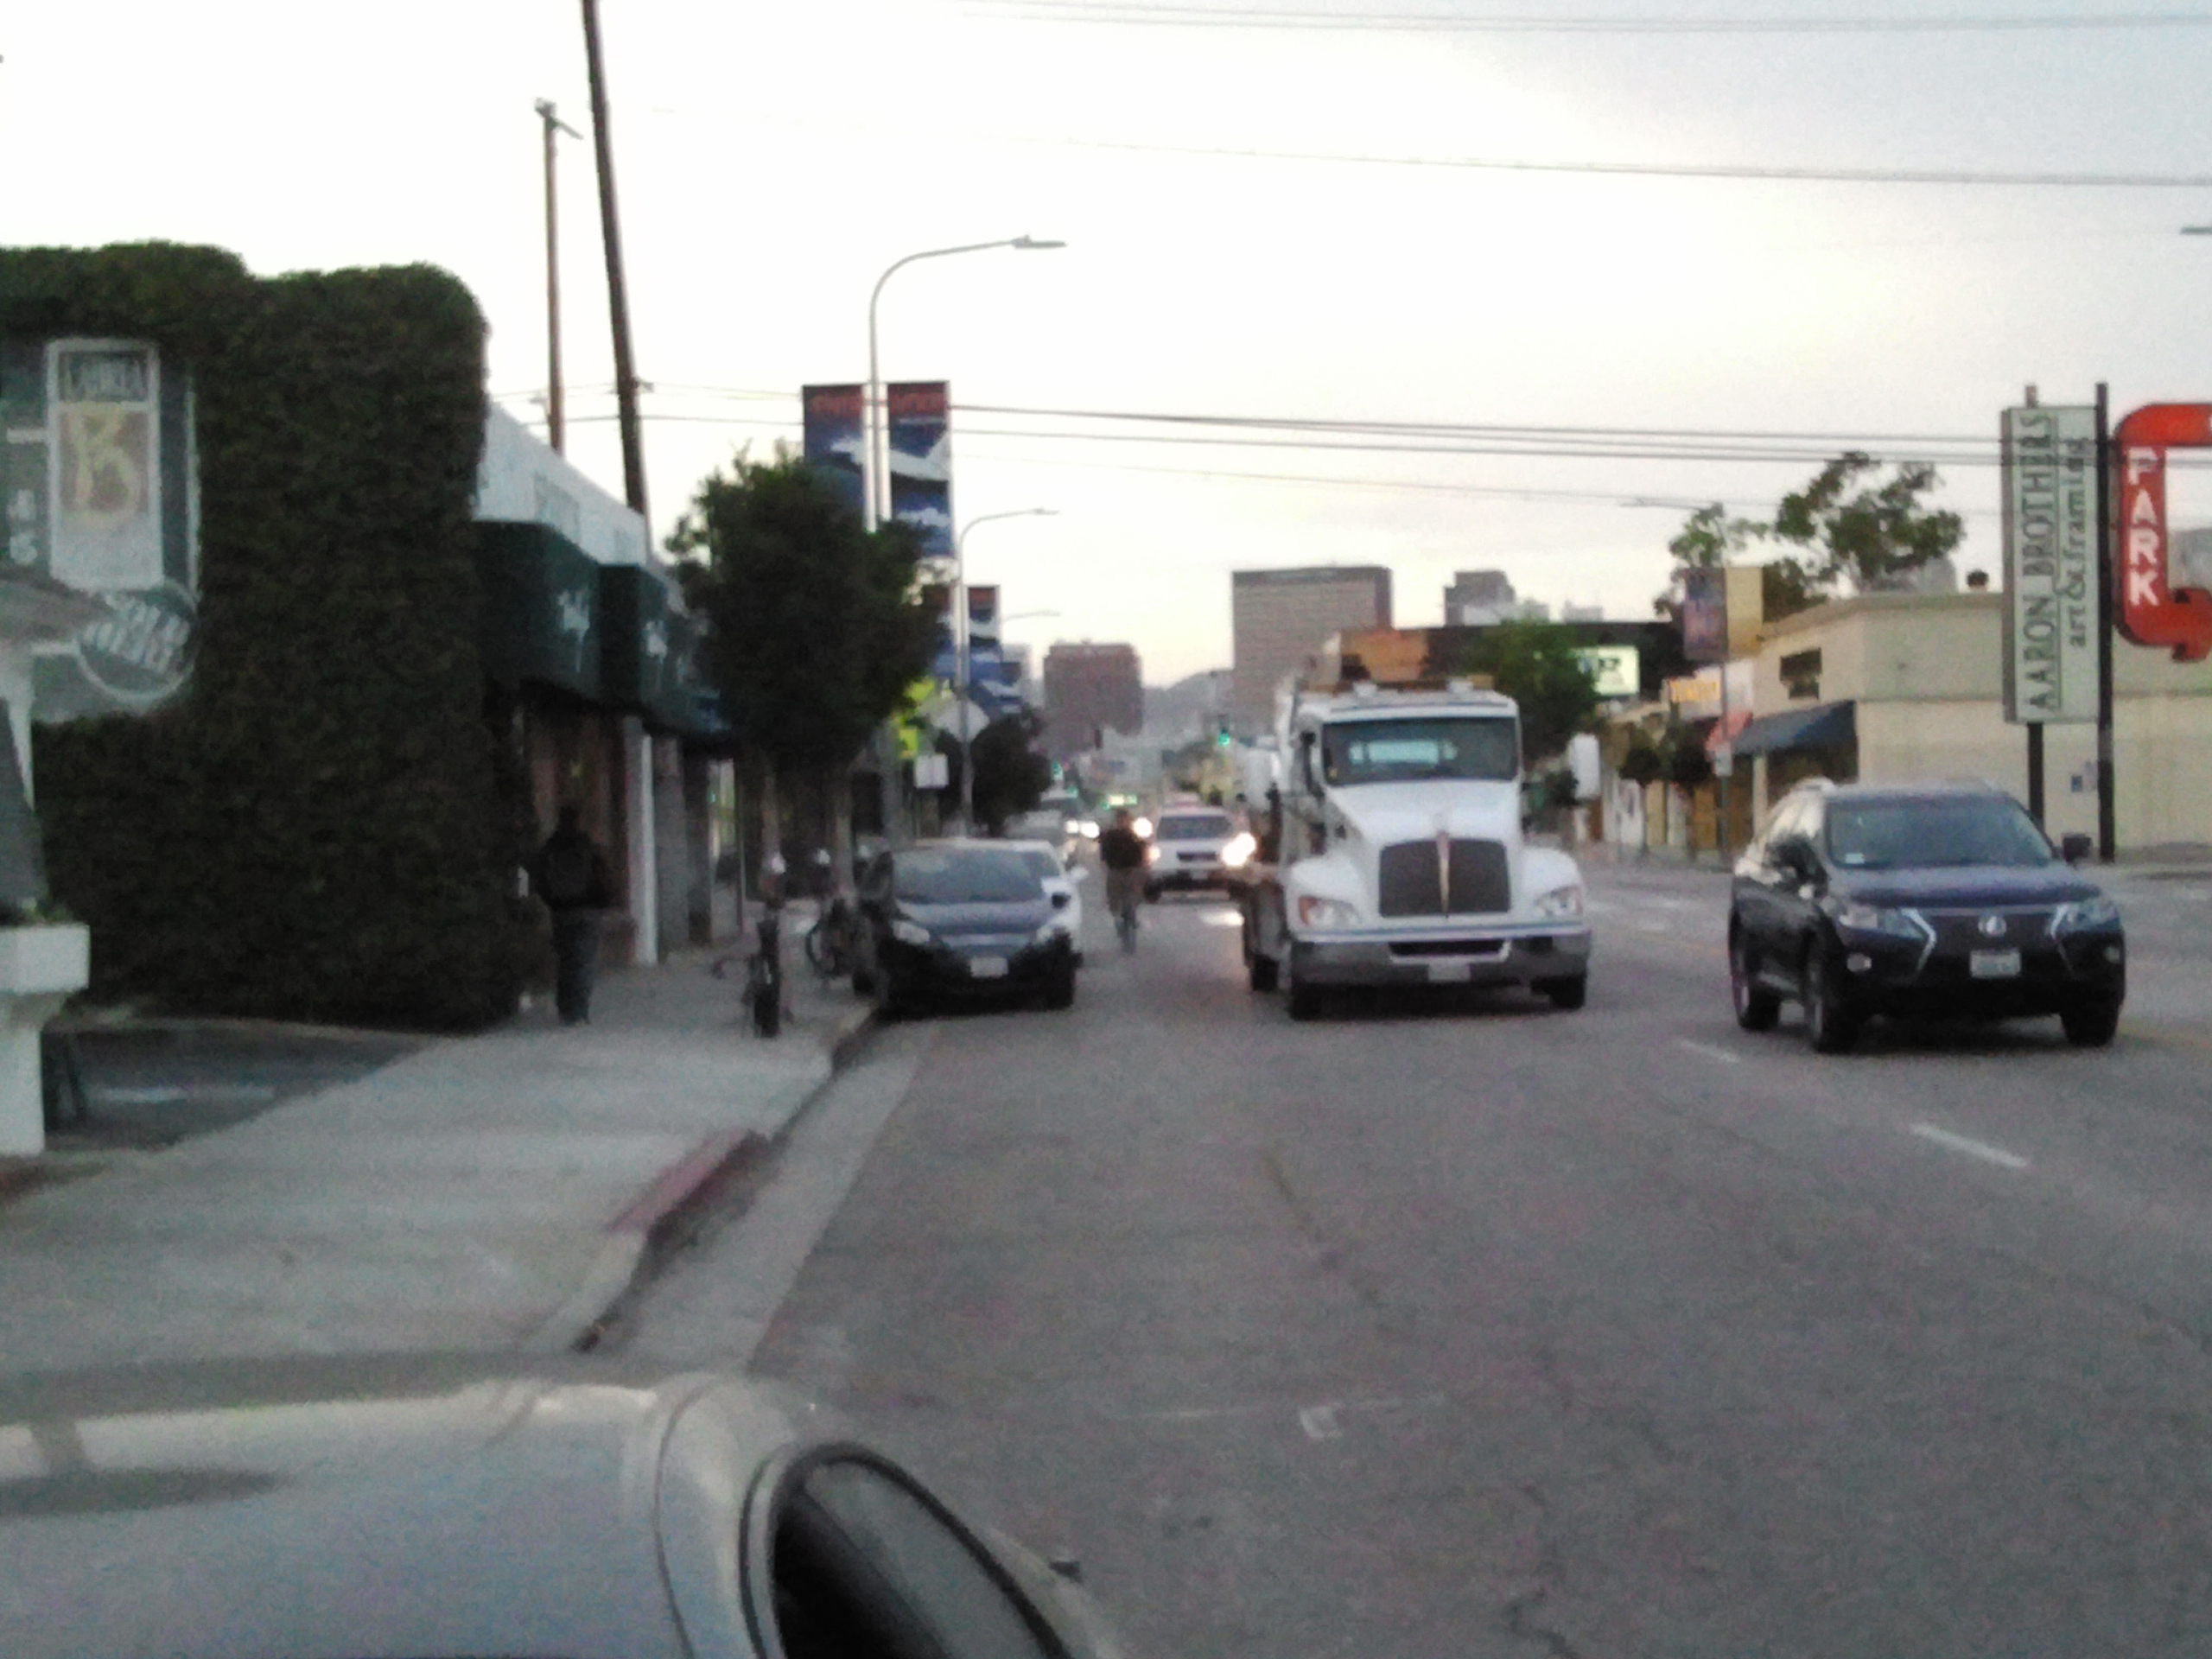 Large truck just squeezed past cyclist in same lane; that couldn't have felt very comfortable.